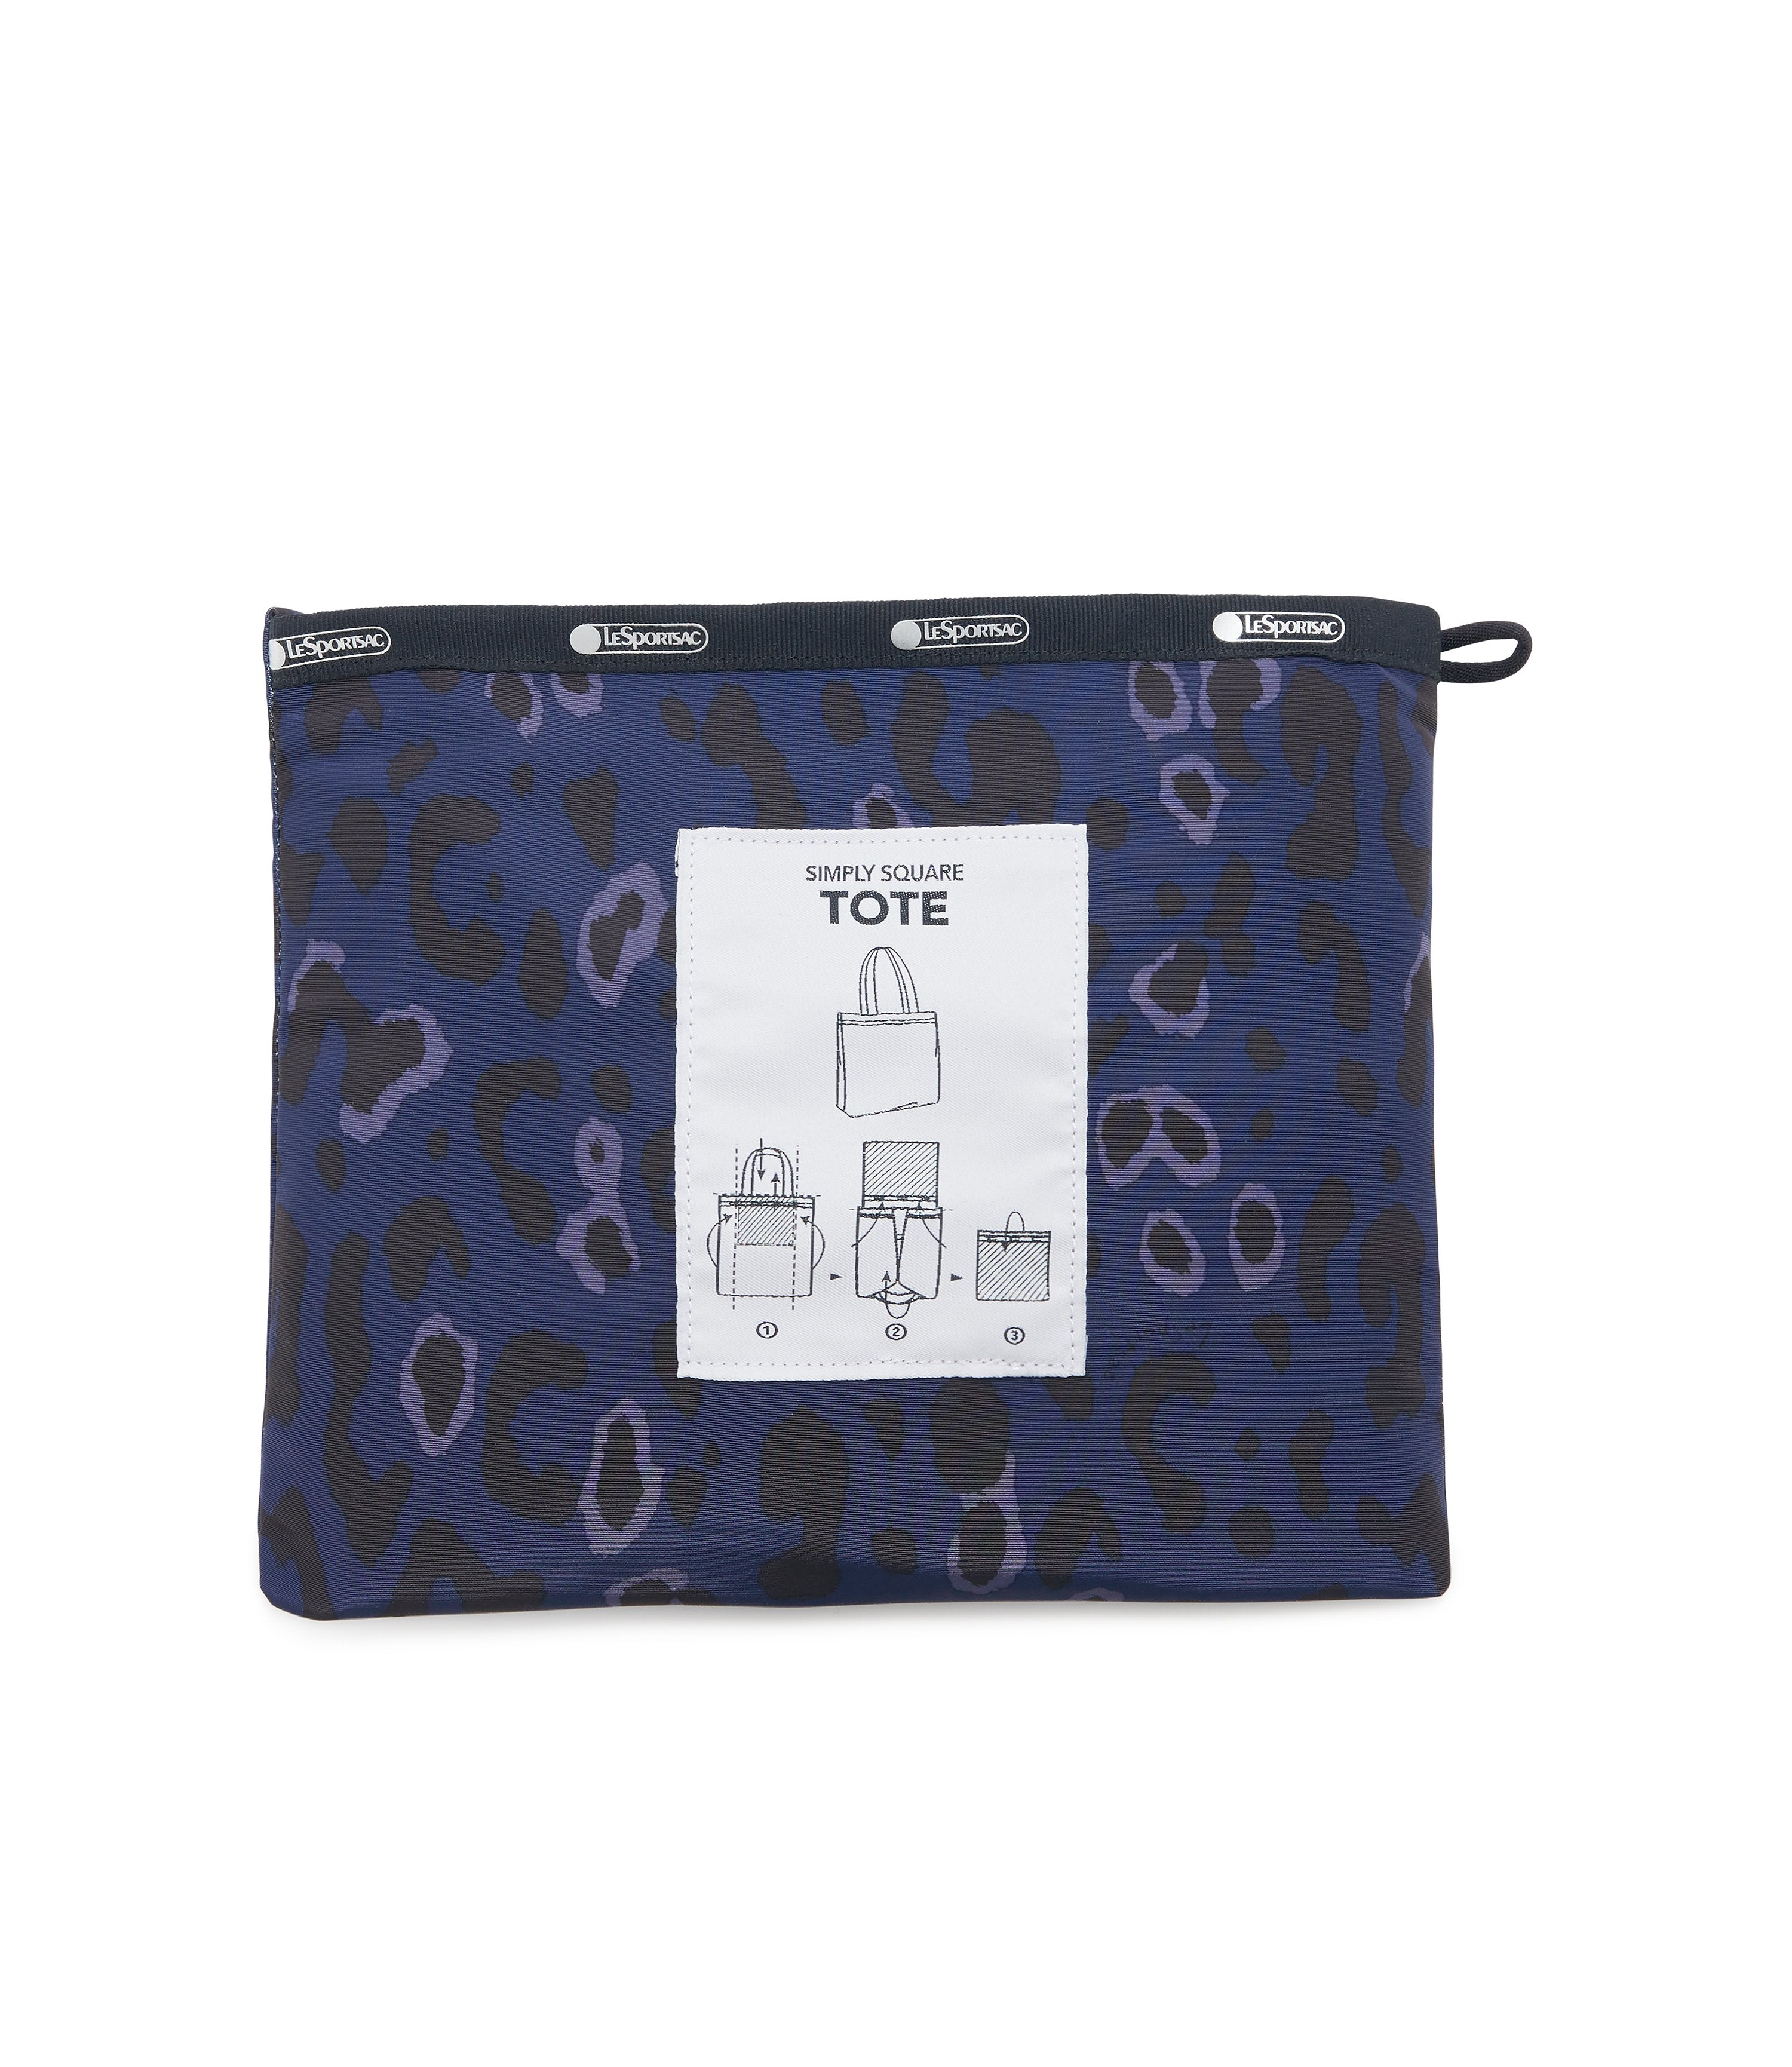 Totes - Pouch Image